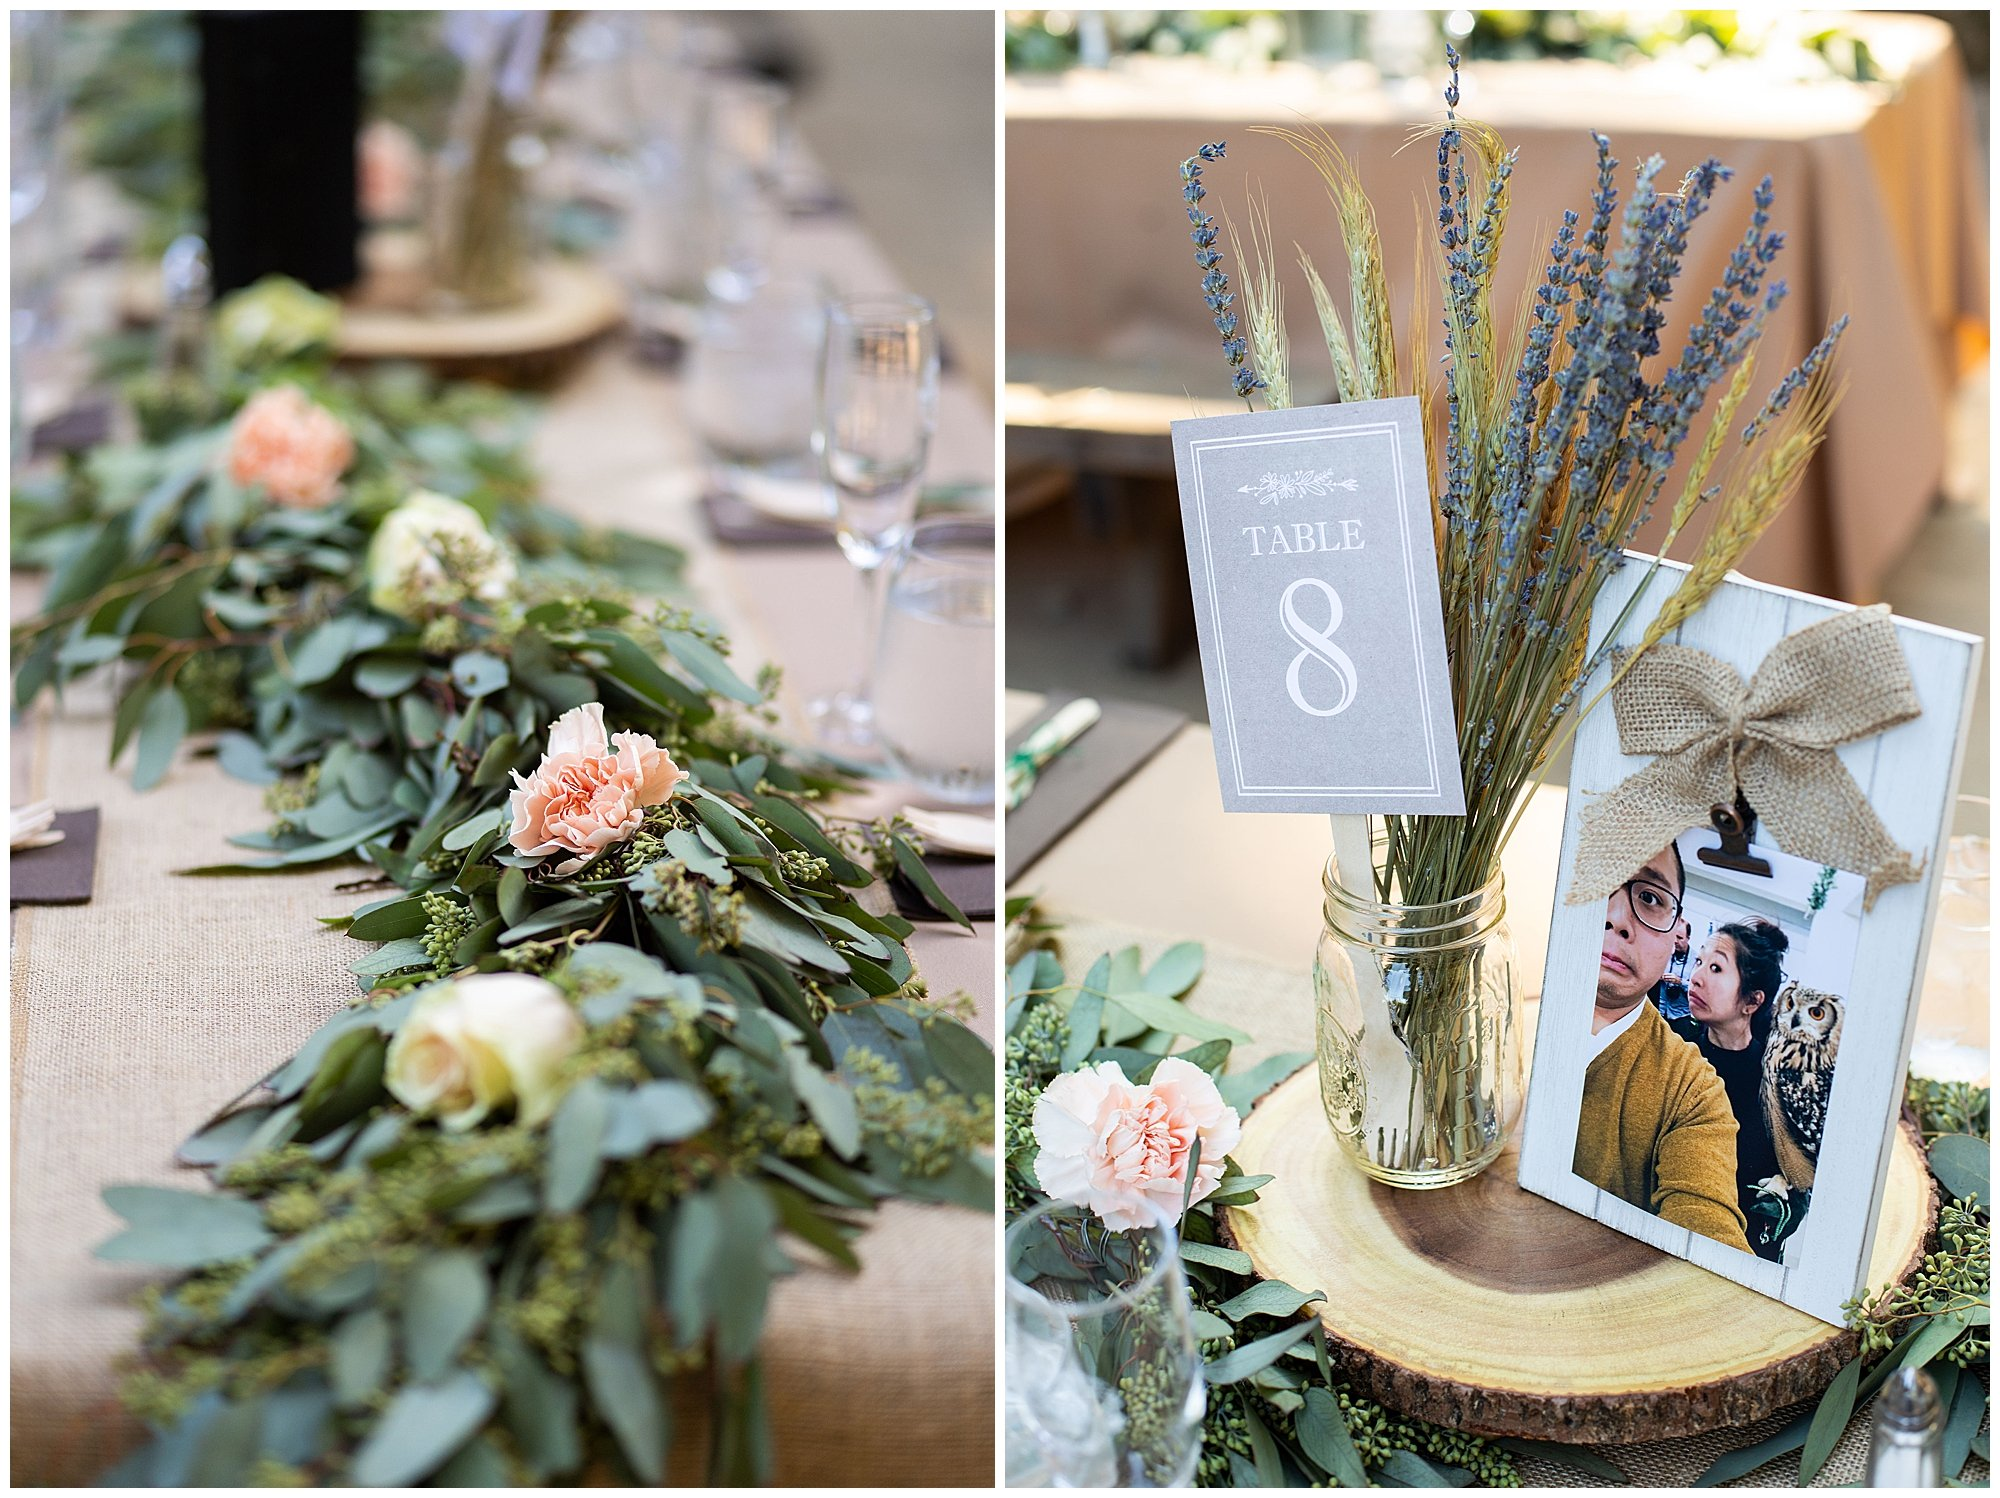 backyard-inspired-wedding-with-diy-details-19